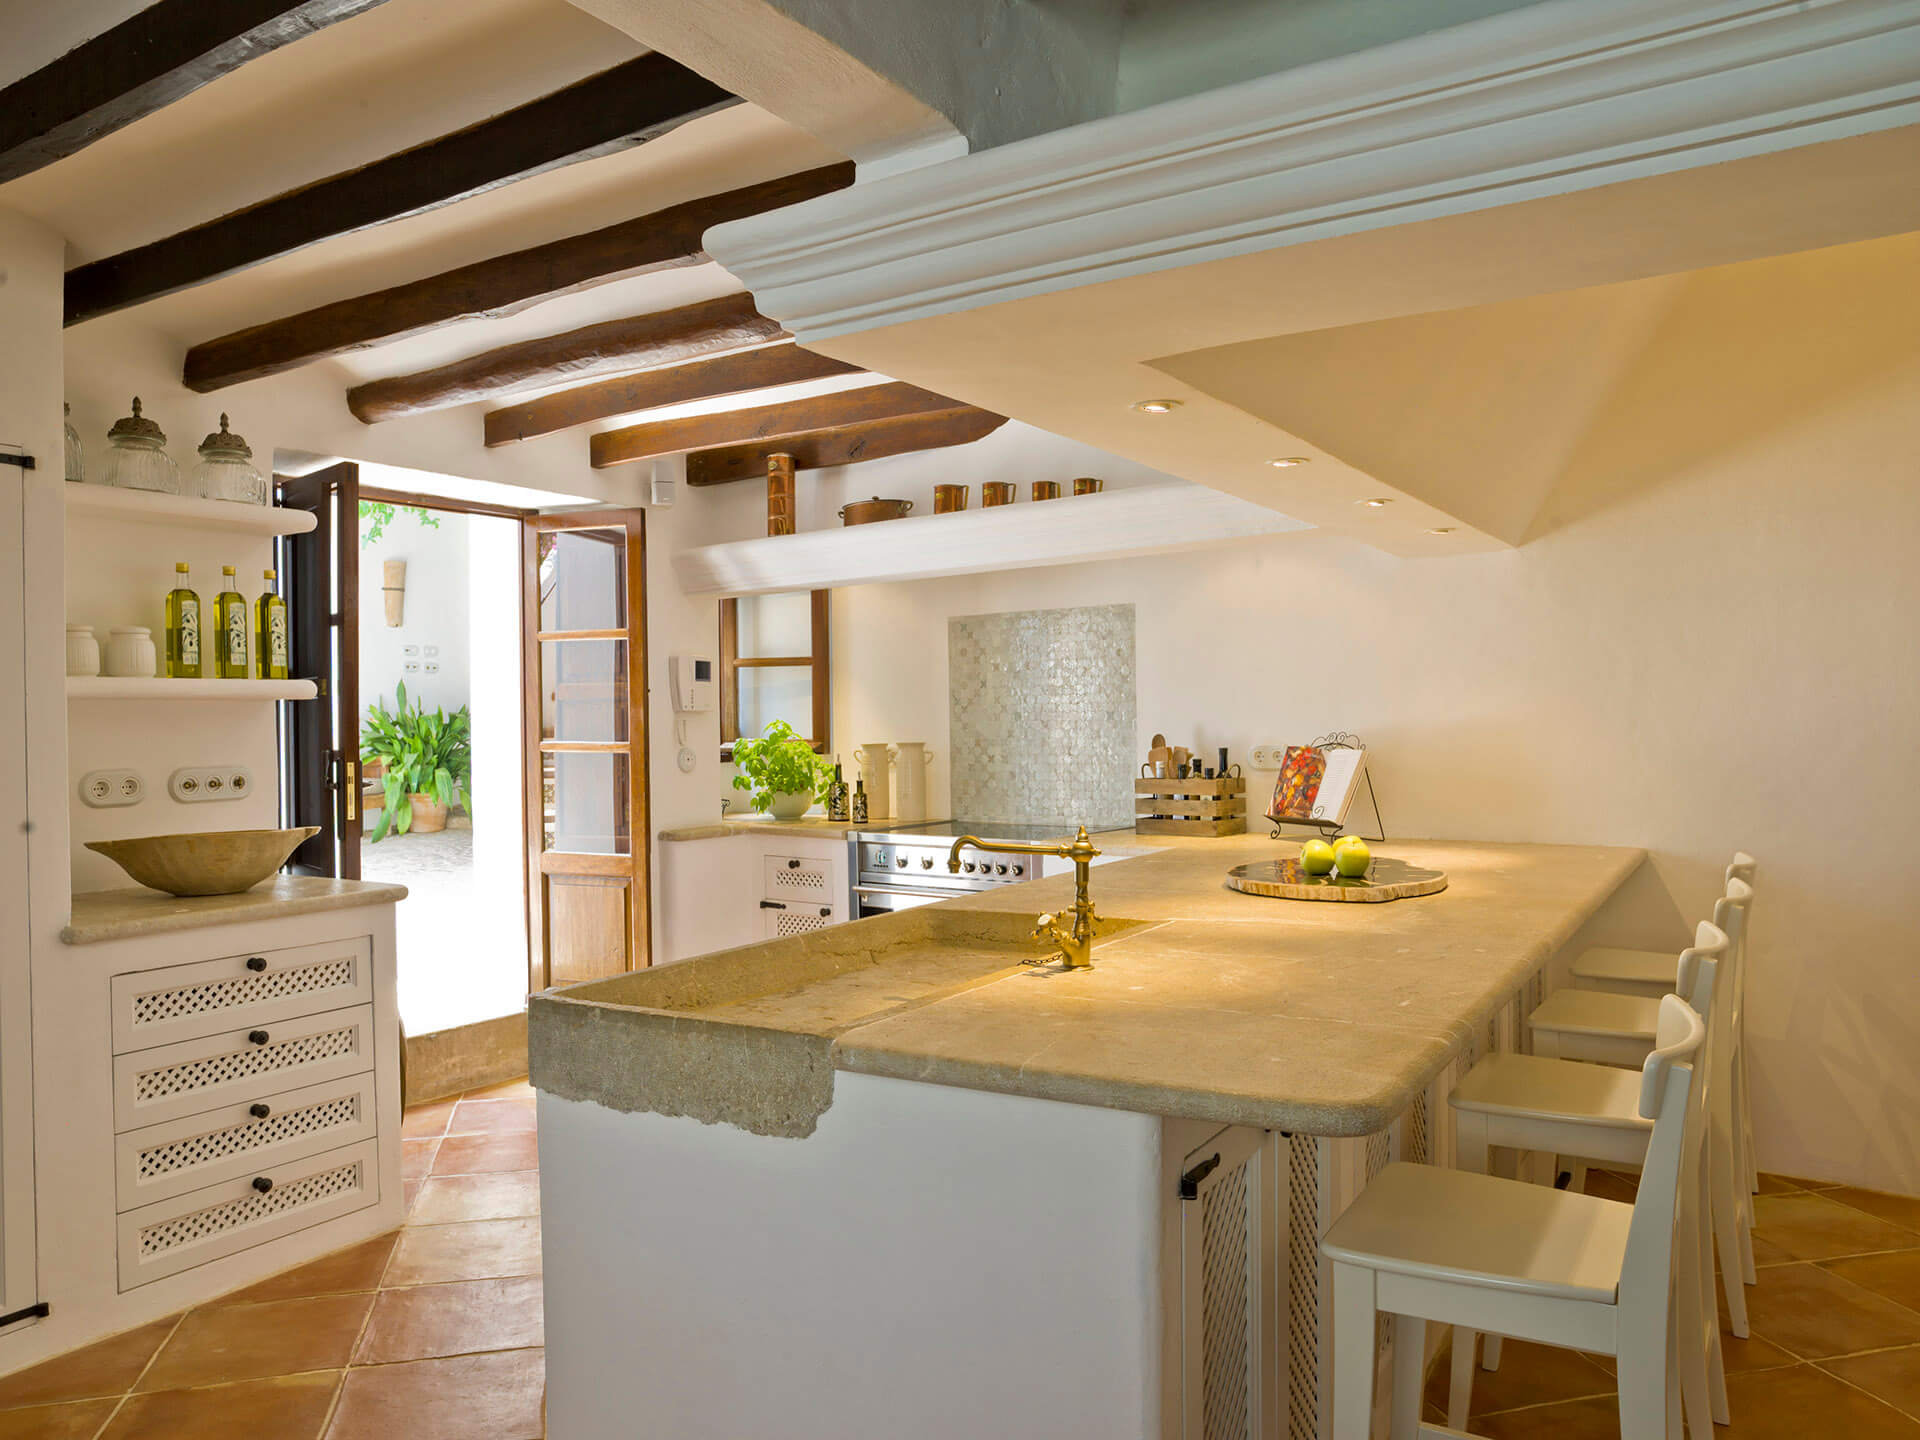 Mallorca-Kitchen-breakfast-bar-interior